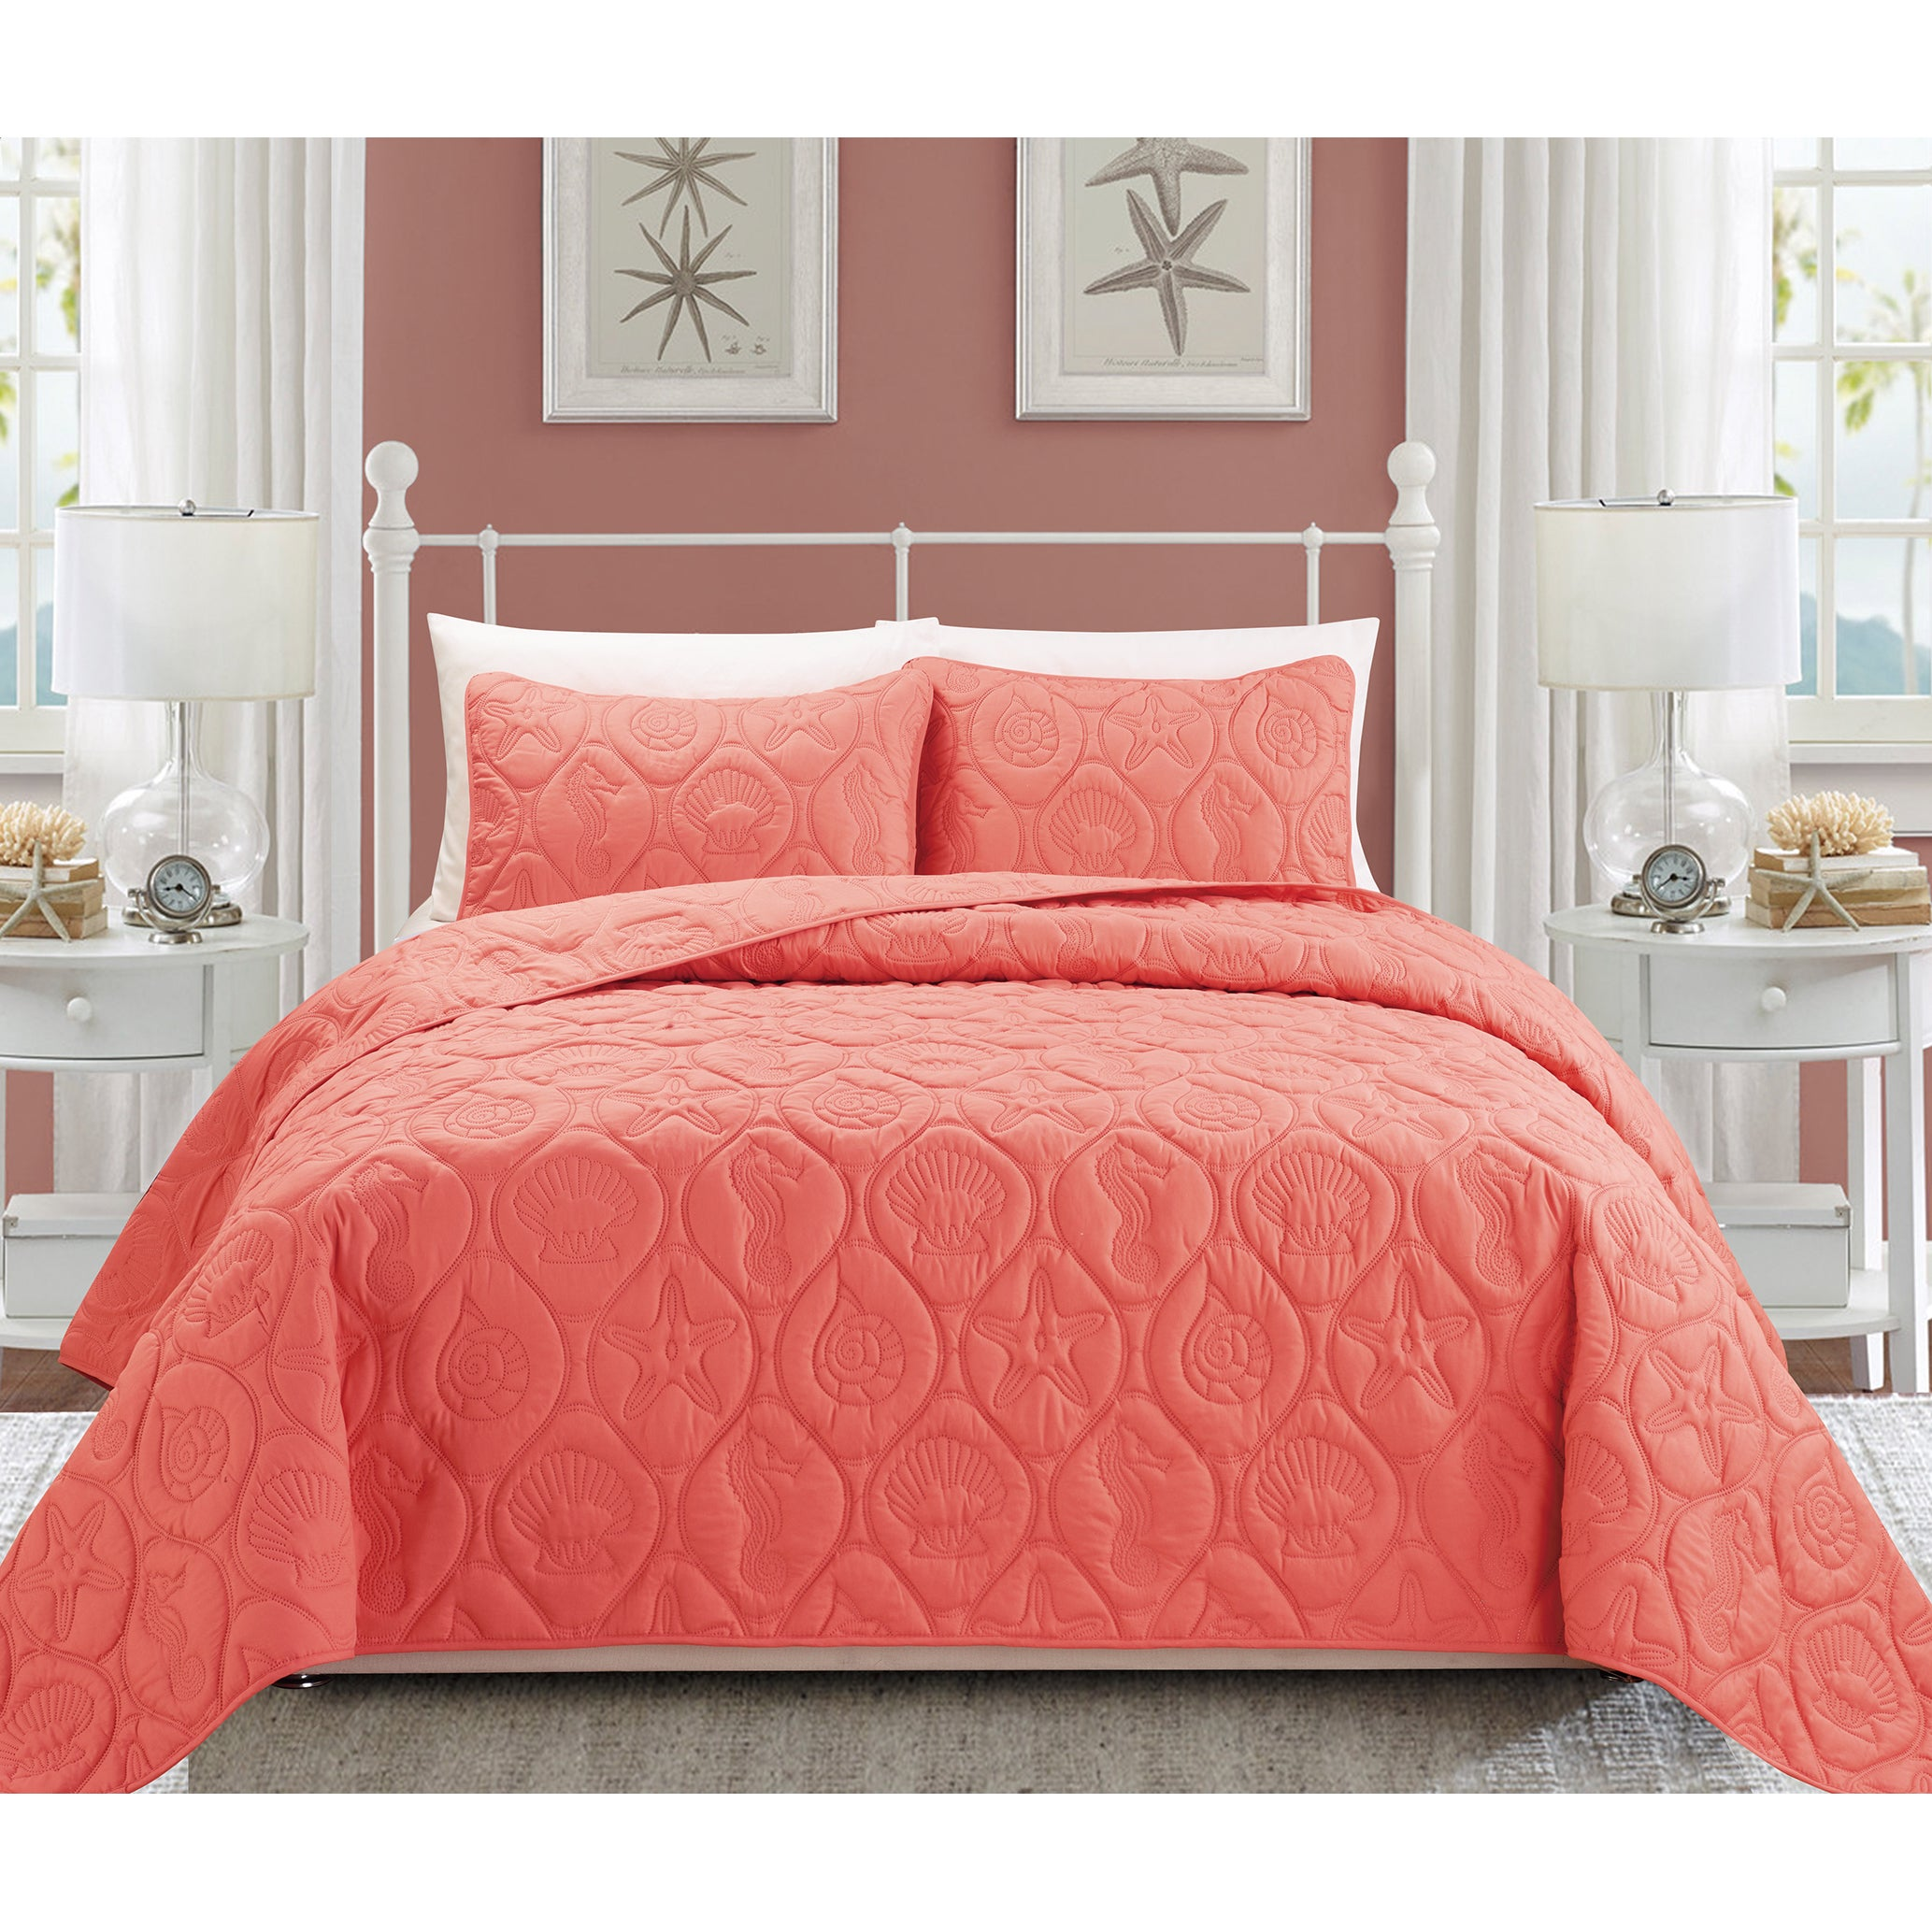 bedding bedroom coral ideas for comforter ocean gorgeous theme pin with beautiful sea grey set